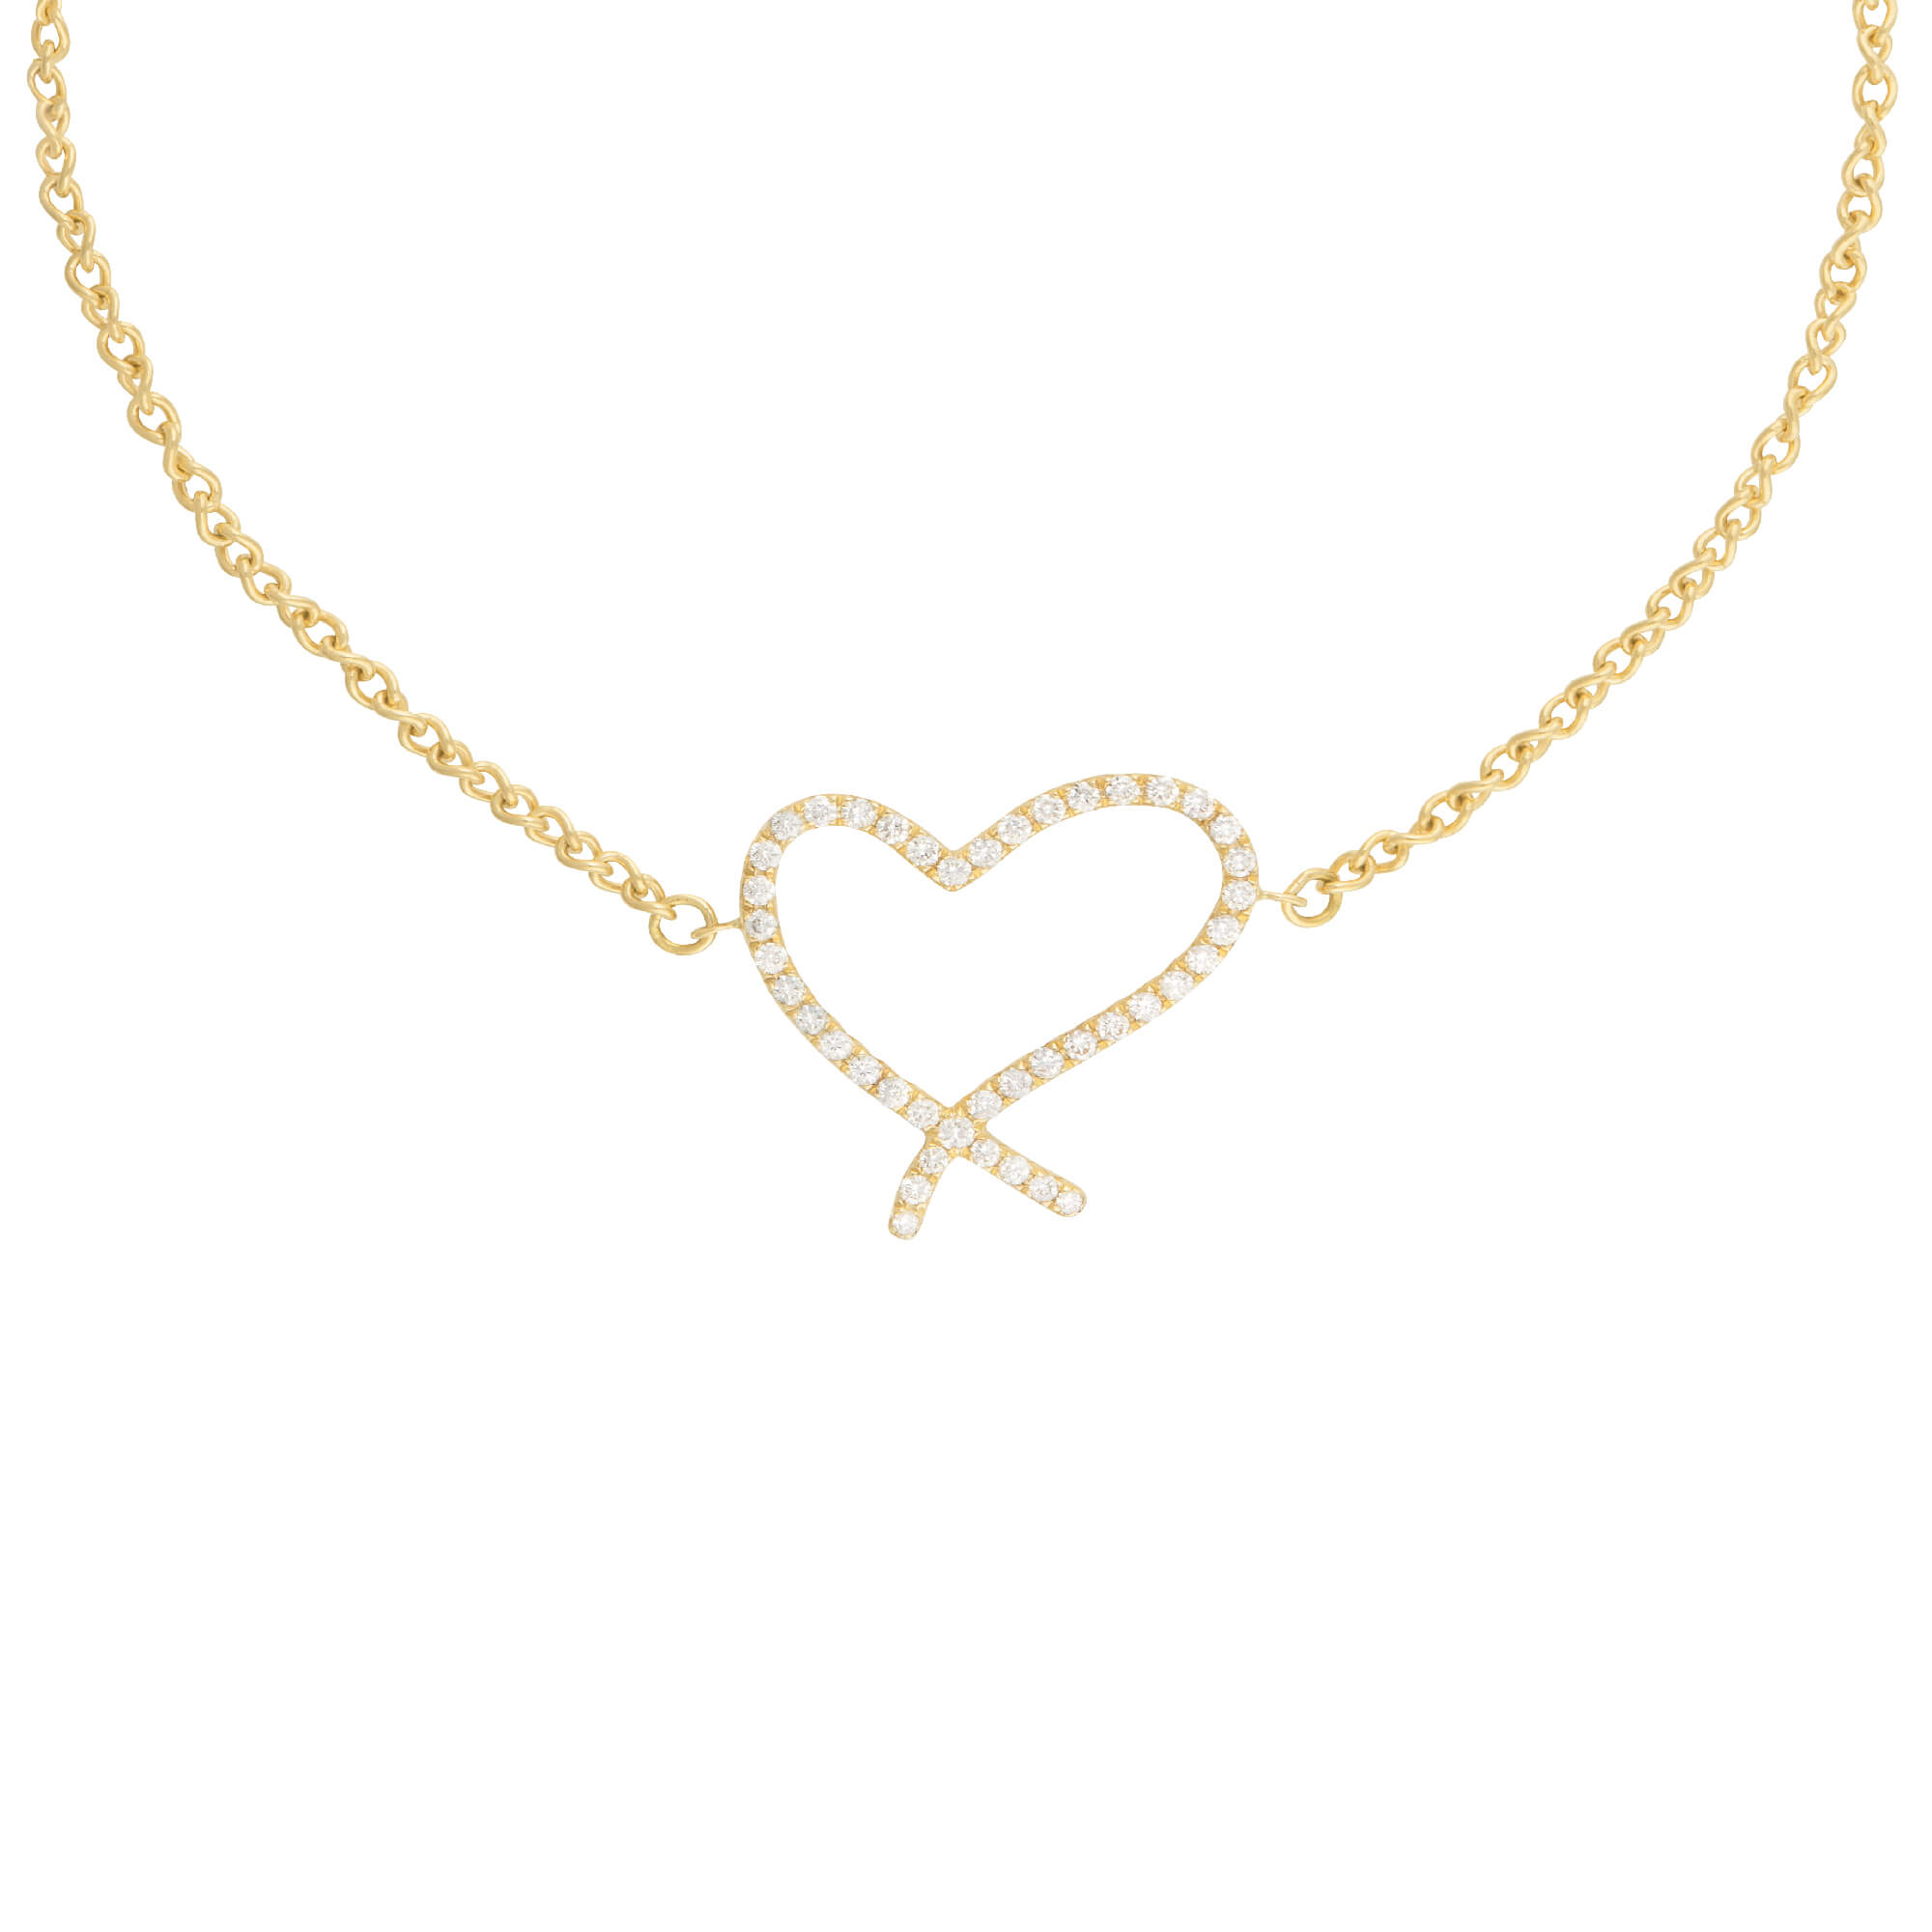 Neon White Diamond & Yellow Gold Heart Bracelet | I Promise To Love You